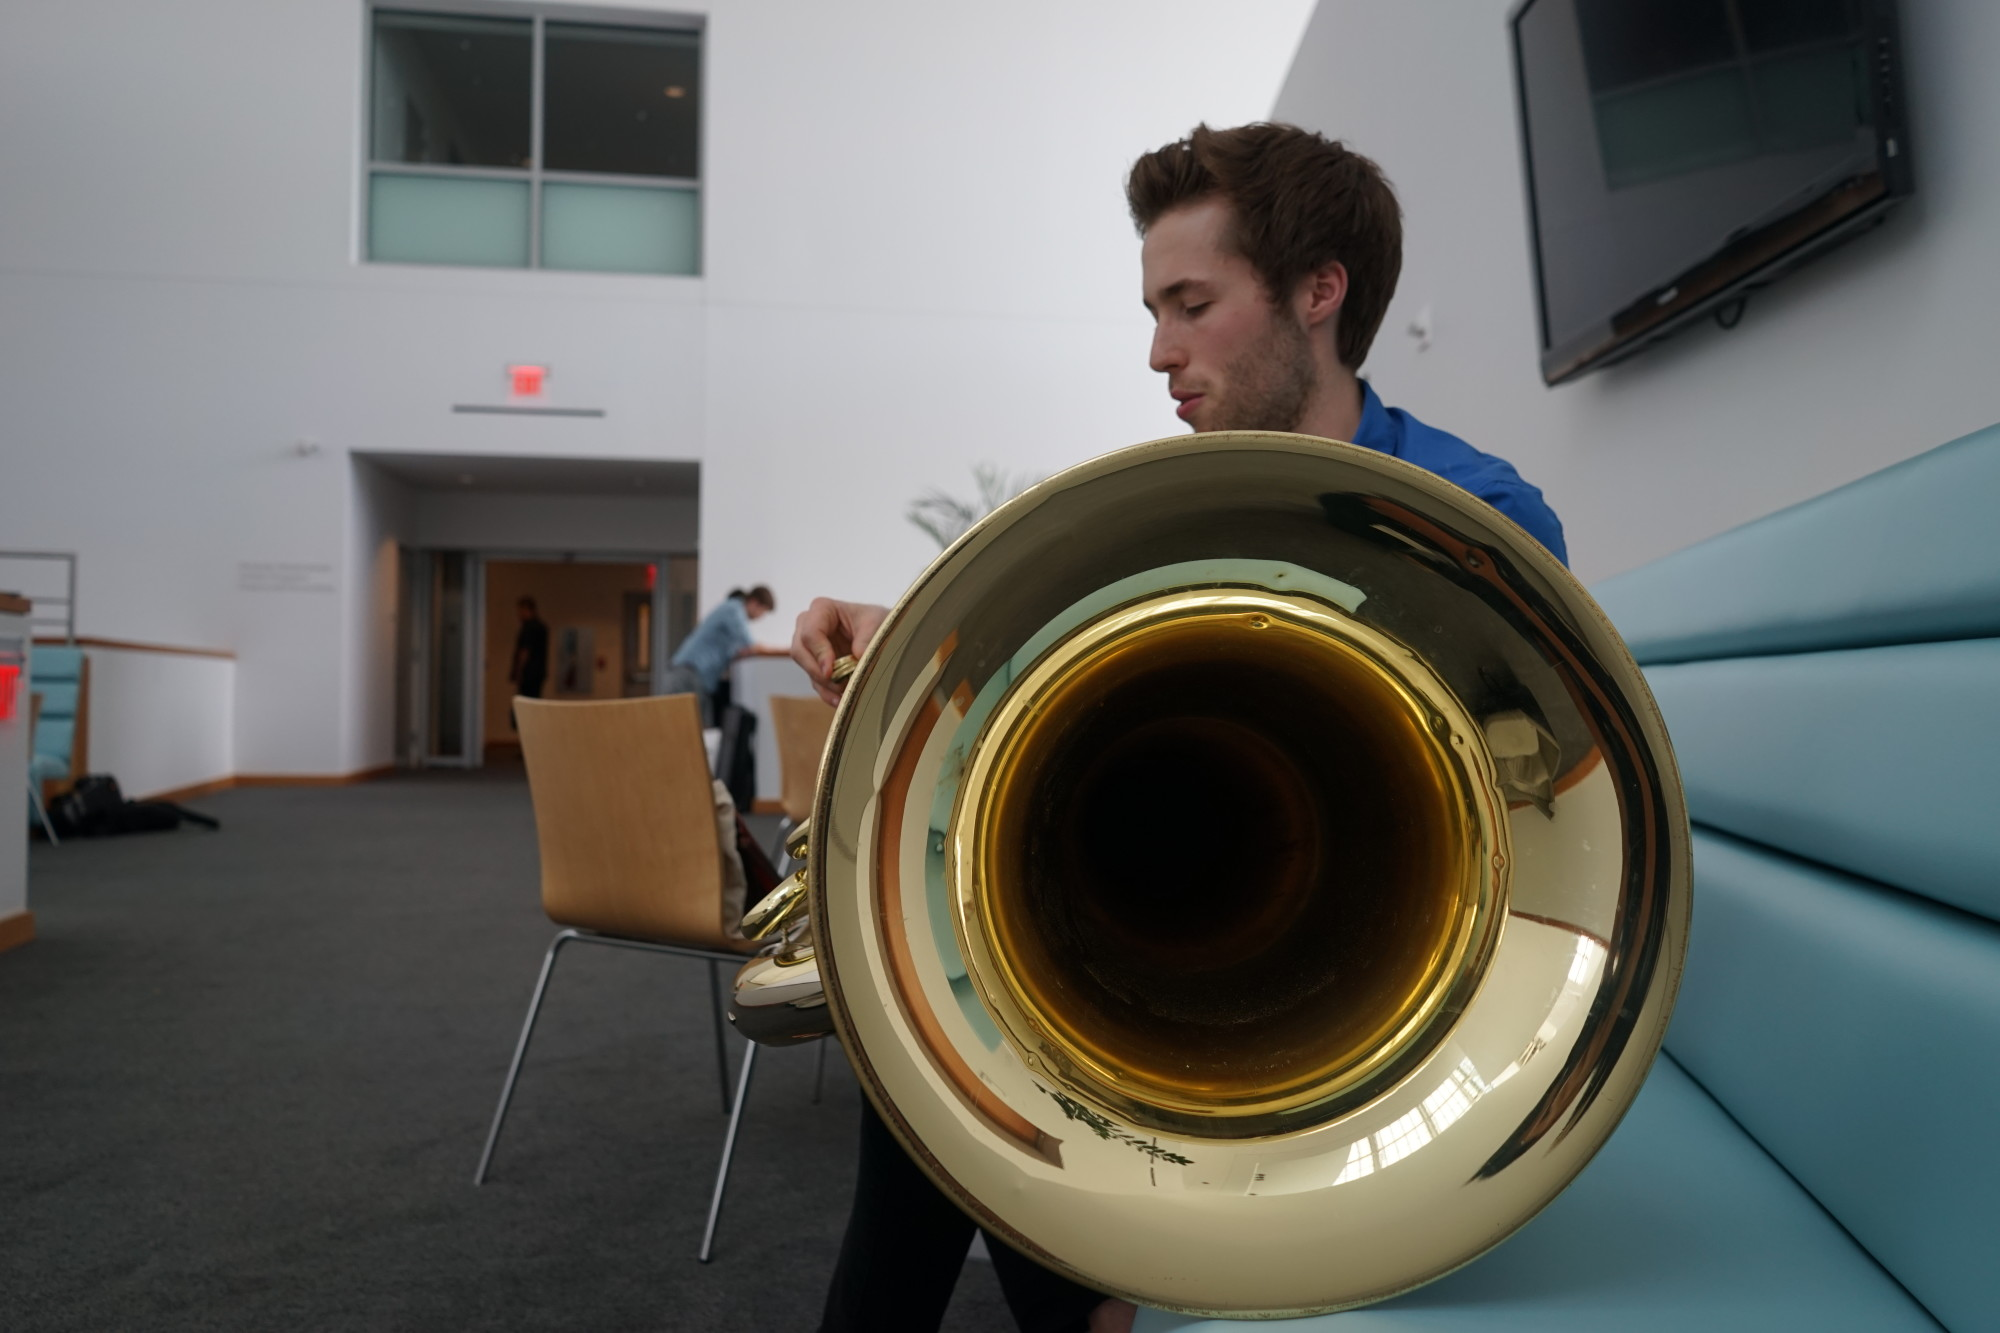 Playing the tuba takes a lot of air. Once I was in Colorado and I was playing and I wasn't used to the altitude and I almost passed out mid-performance.